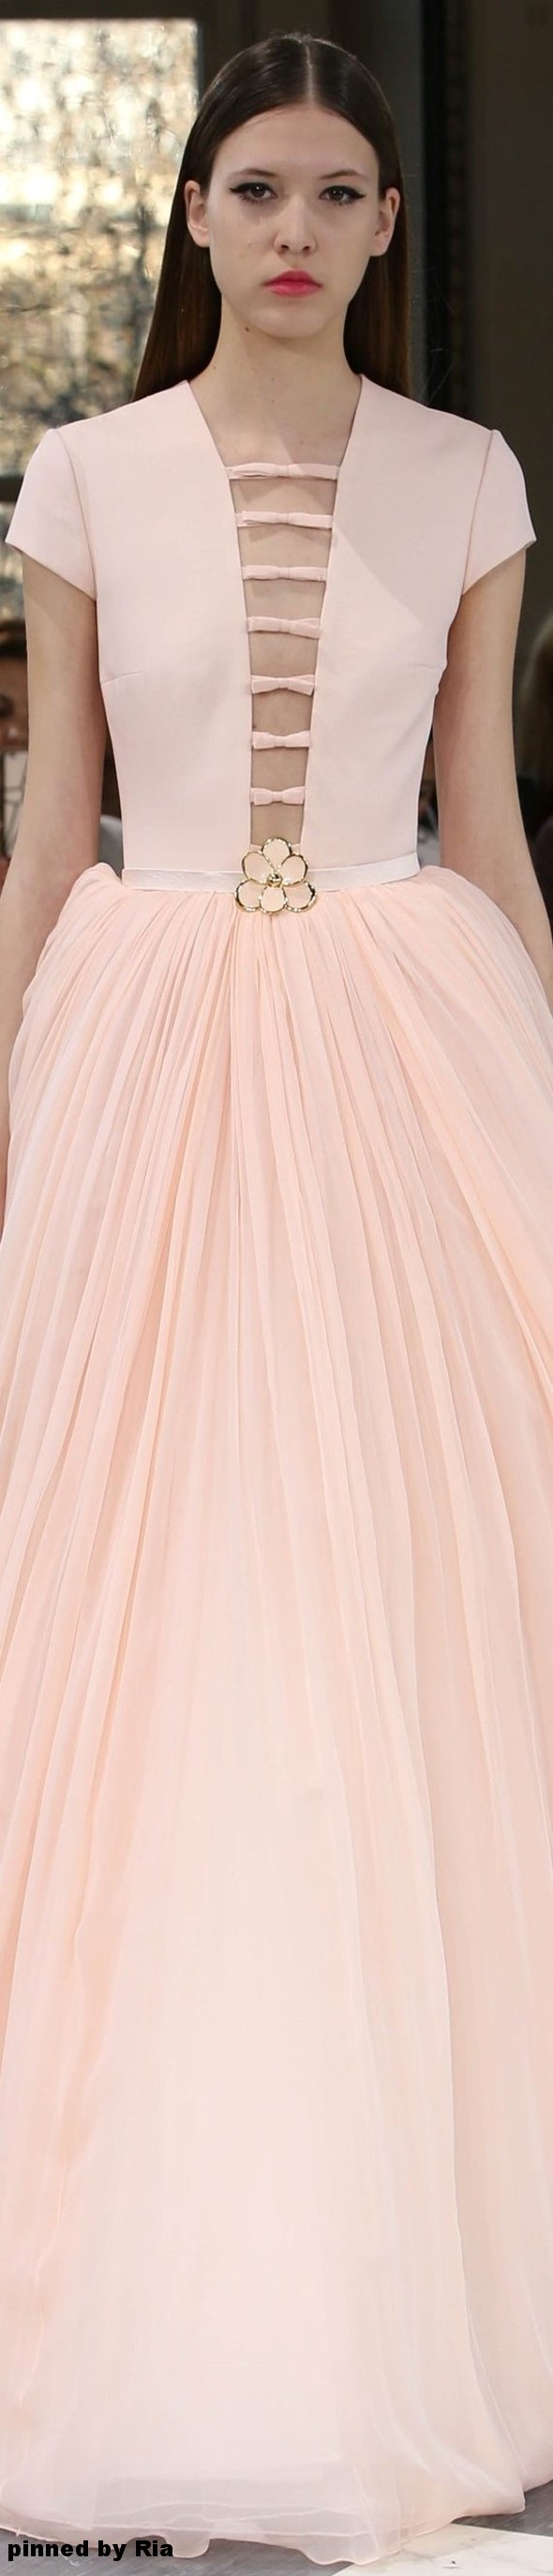 George Hobeika Spring 2016 Couture l Ria | HAUTE COUTURE | Pinterest